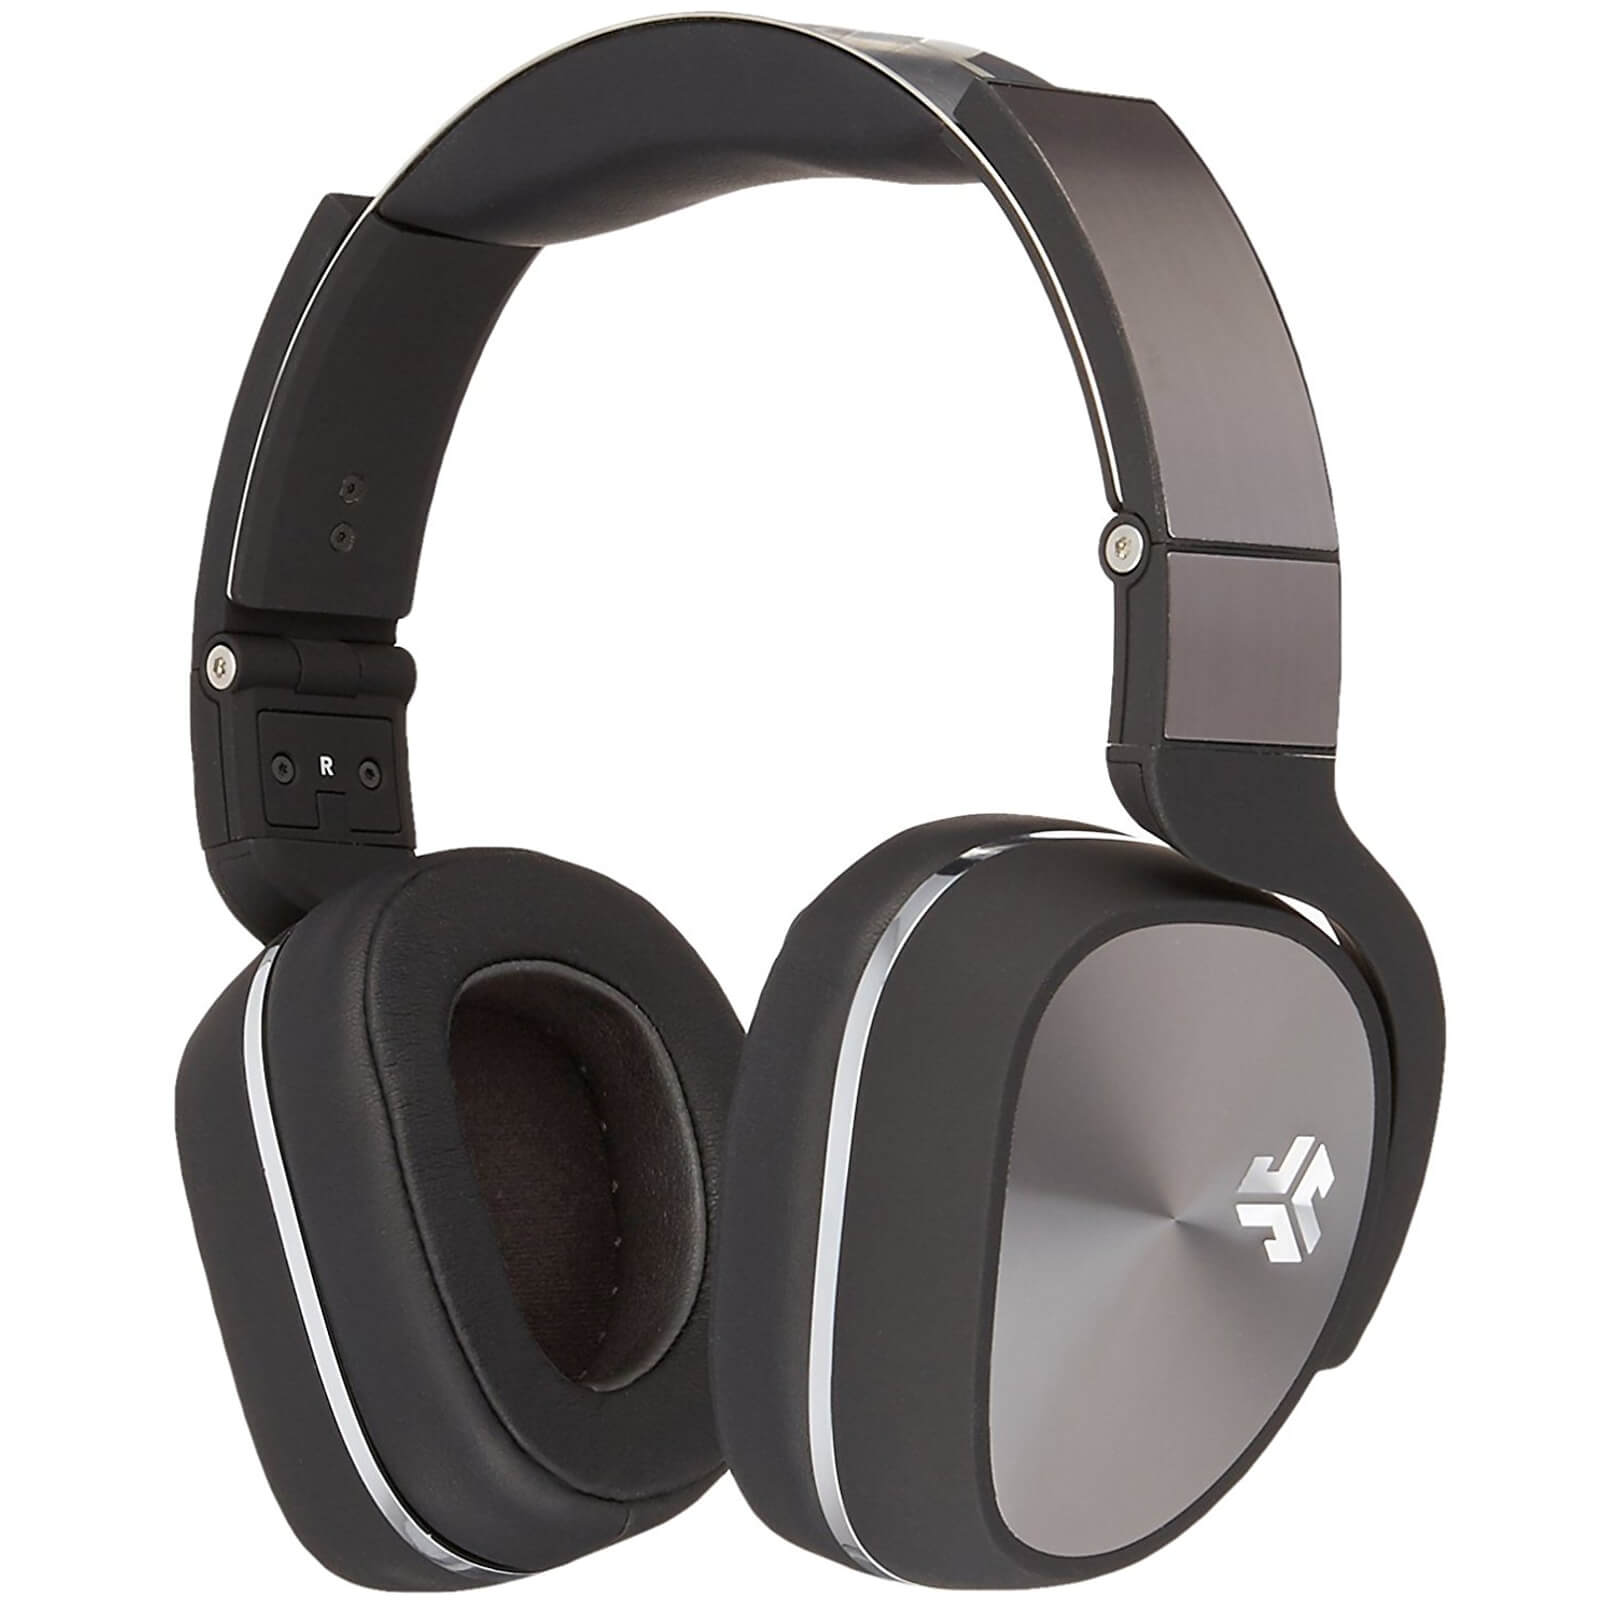 JLab Audio Flex Studio DJ Style Over Ear Headphones with Carry Case and Apple Mic - Black